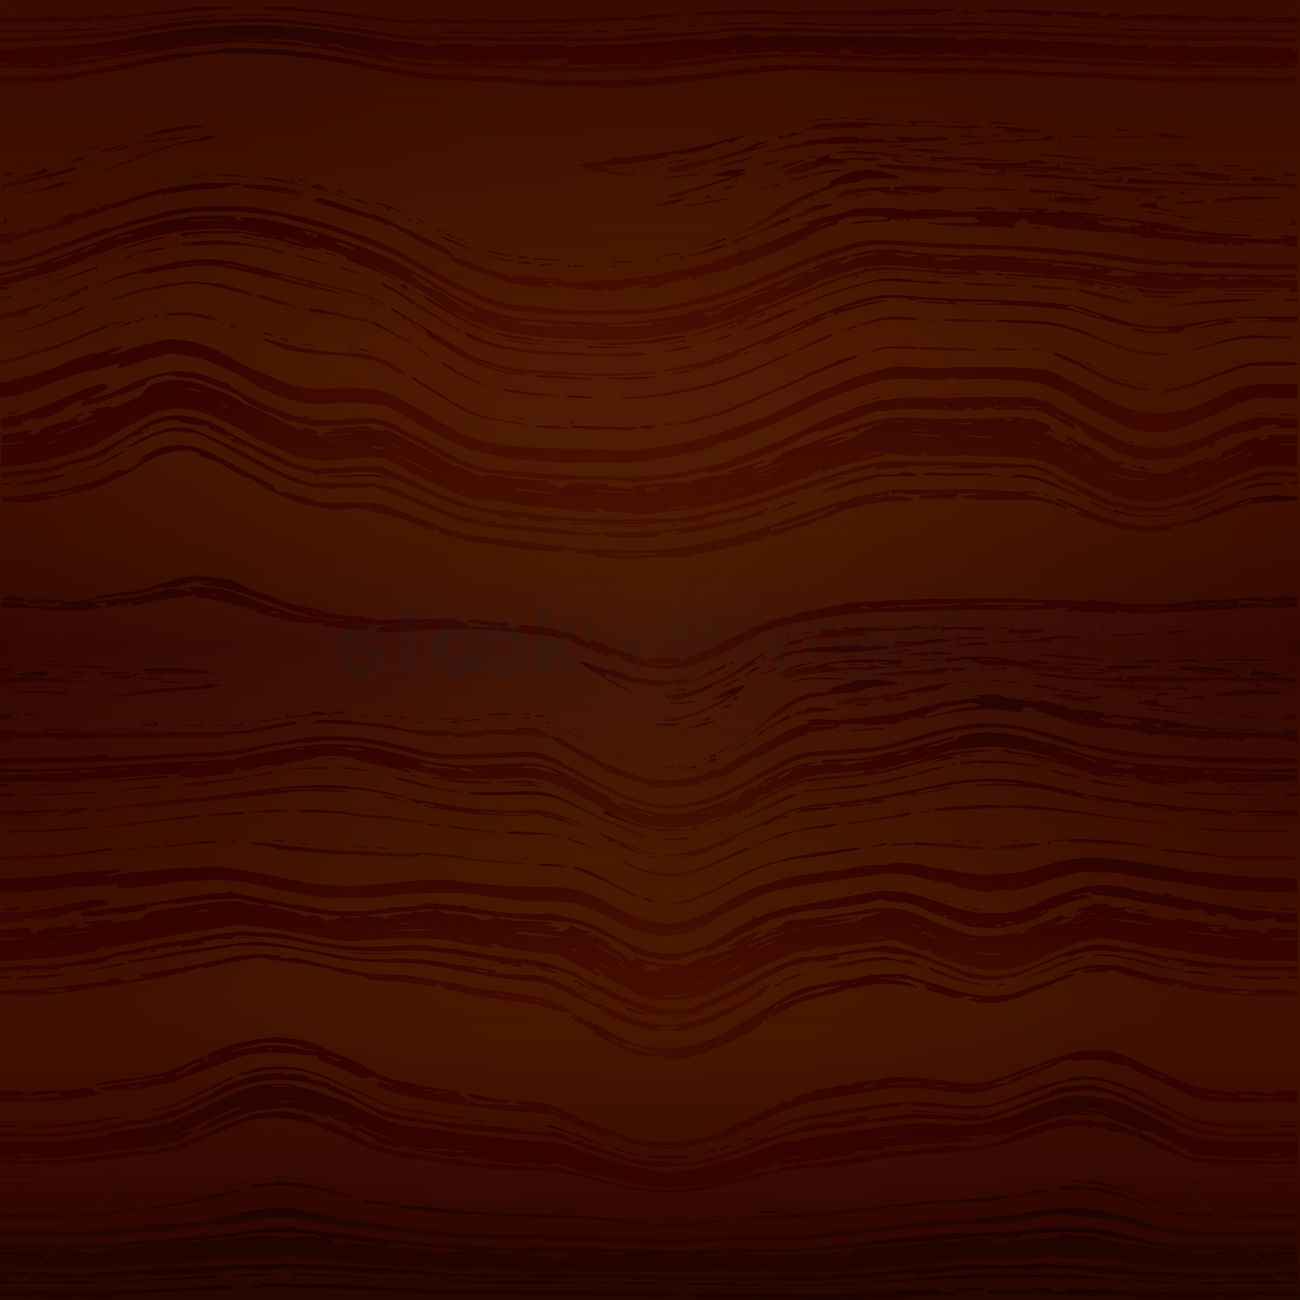 Pics photos wood texture background - Wooden Texture Background Vector Graphic